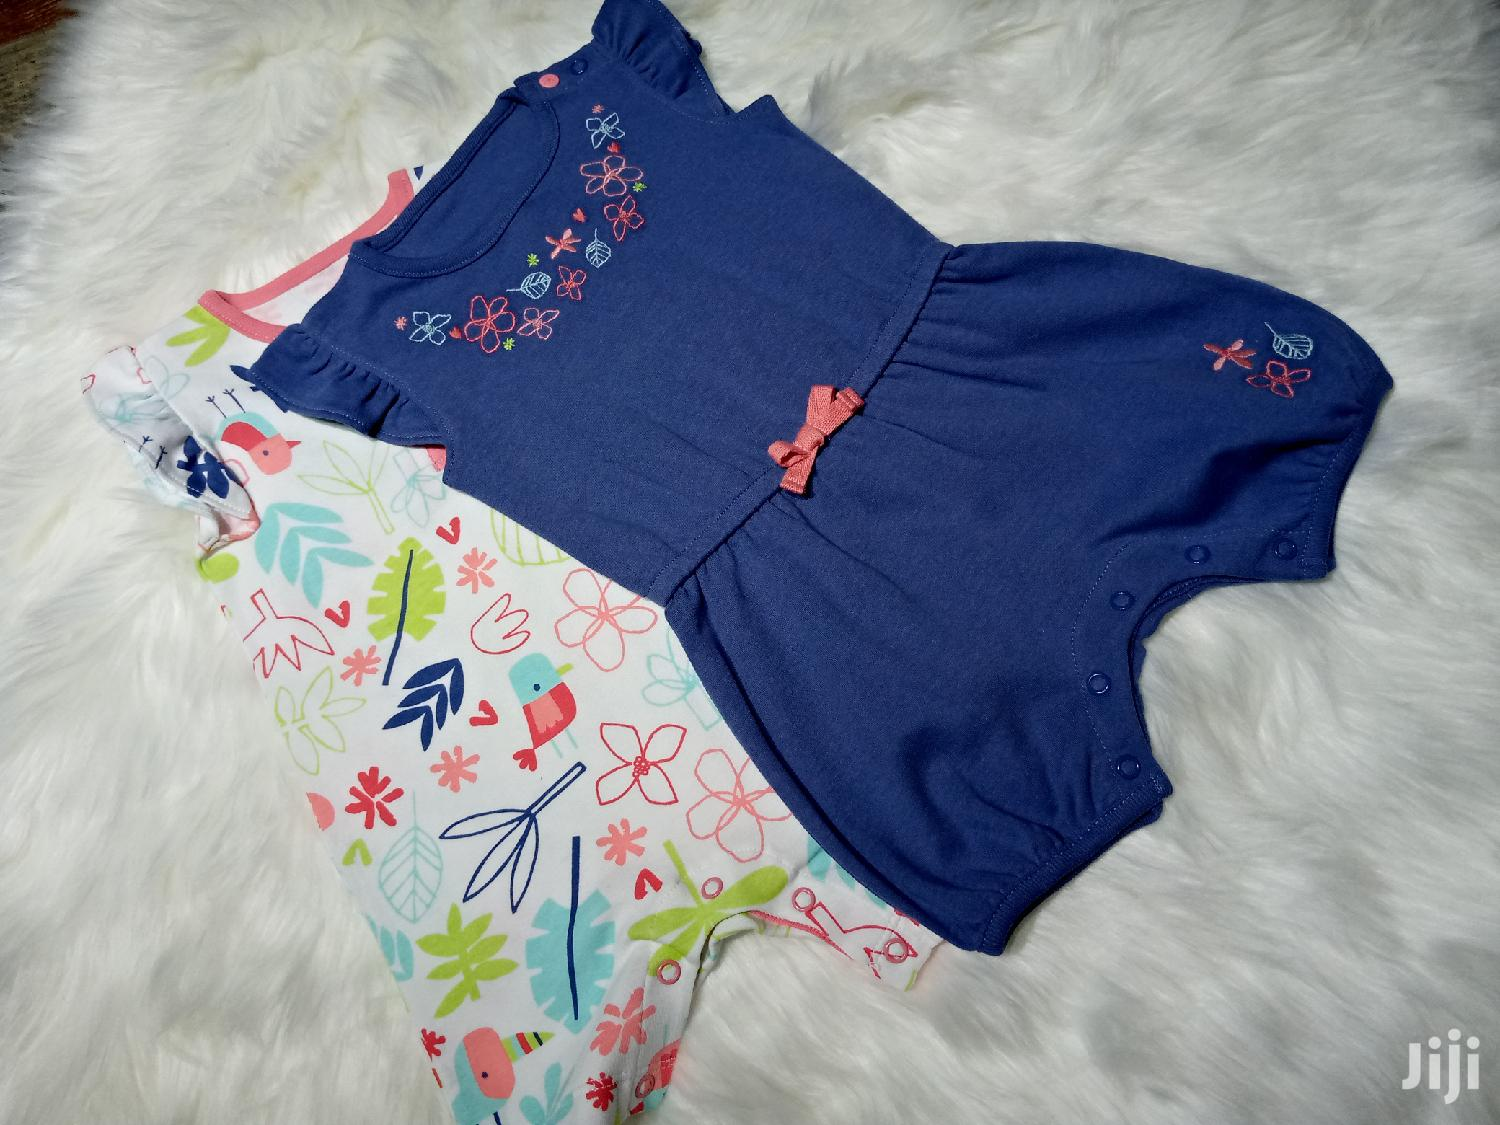 Archive: Quality And Affordable Dresses For Infants And Toddlers